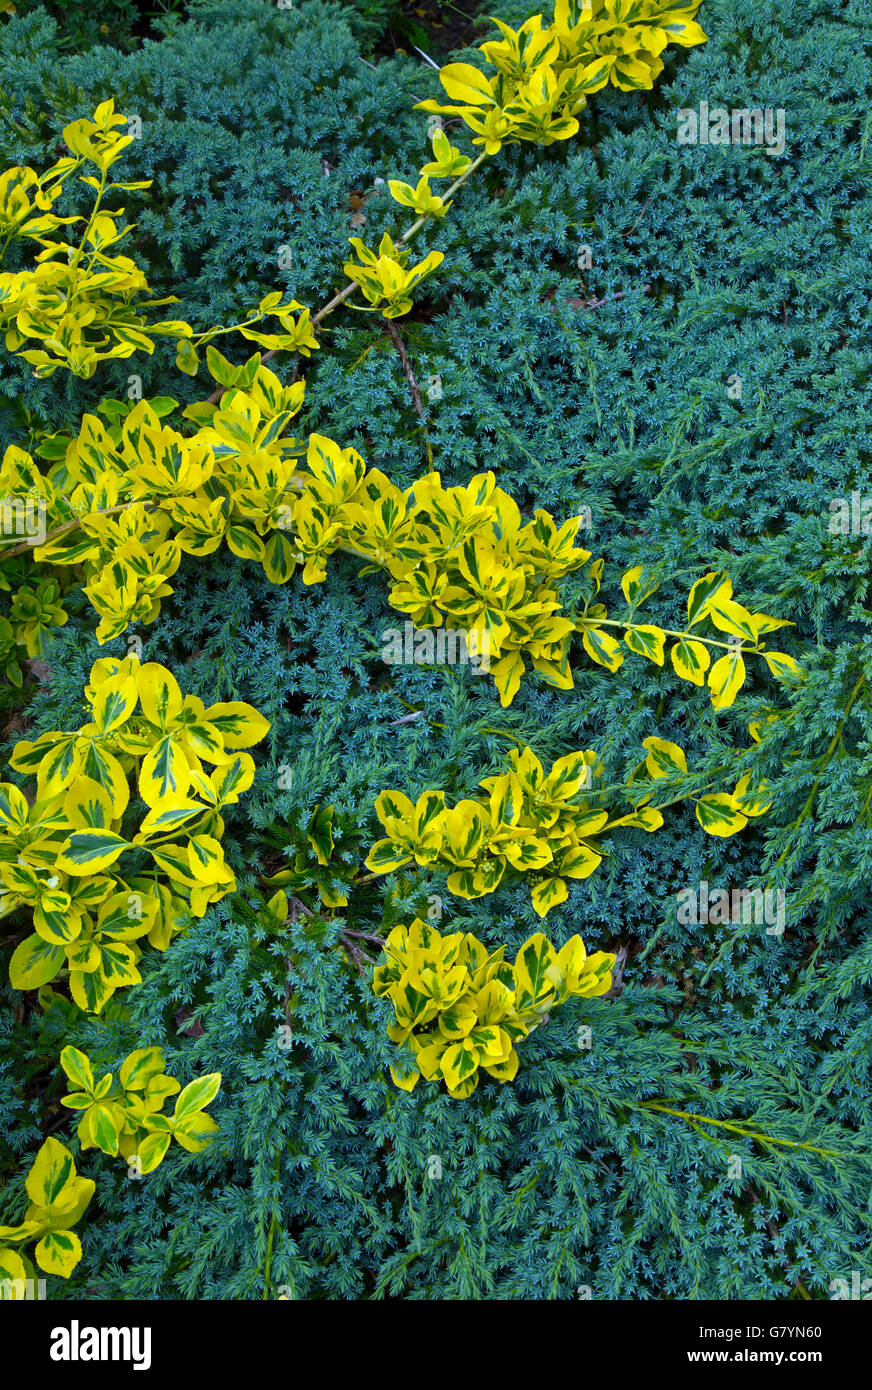 Euonymus fortunei Emerald 'n' Gold leaves growing over conifer - Stock Image